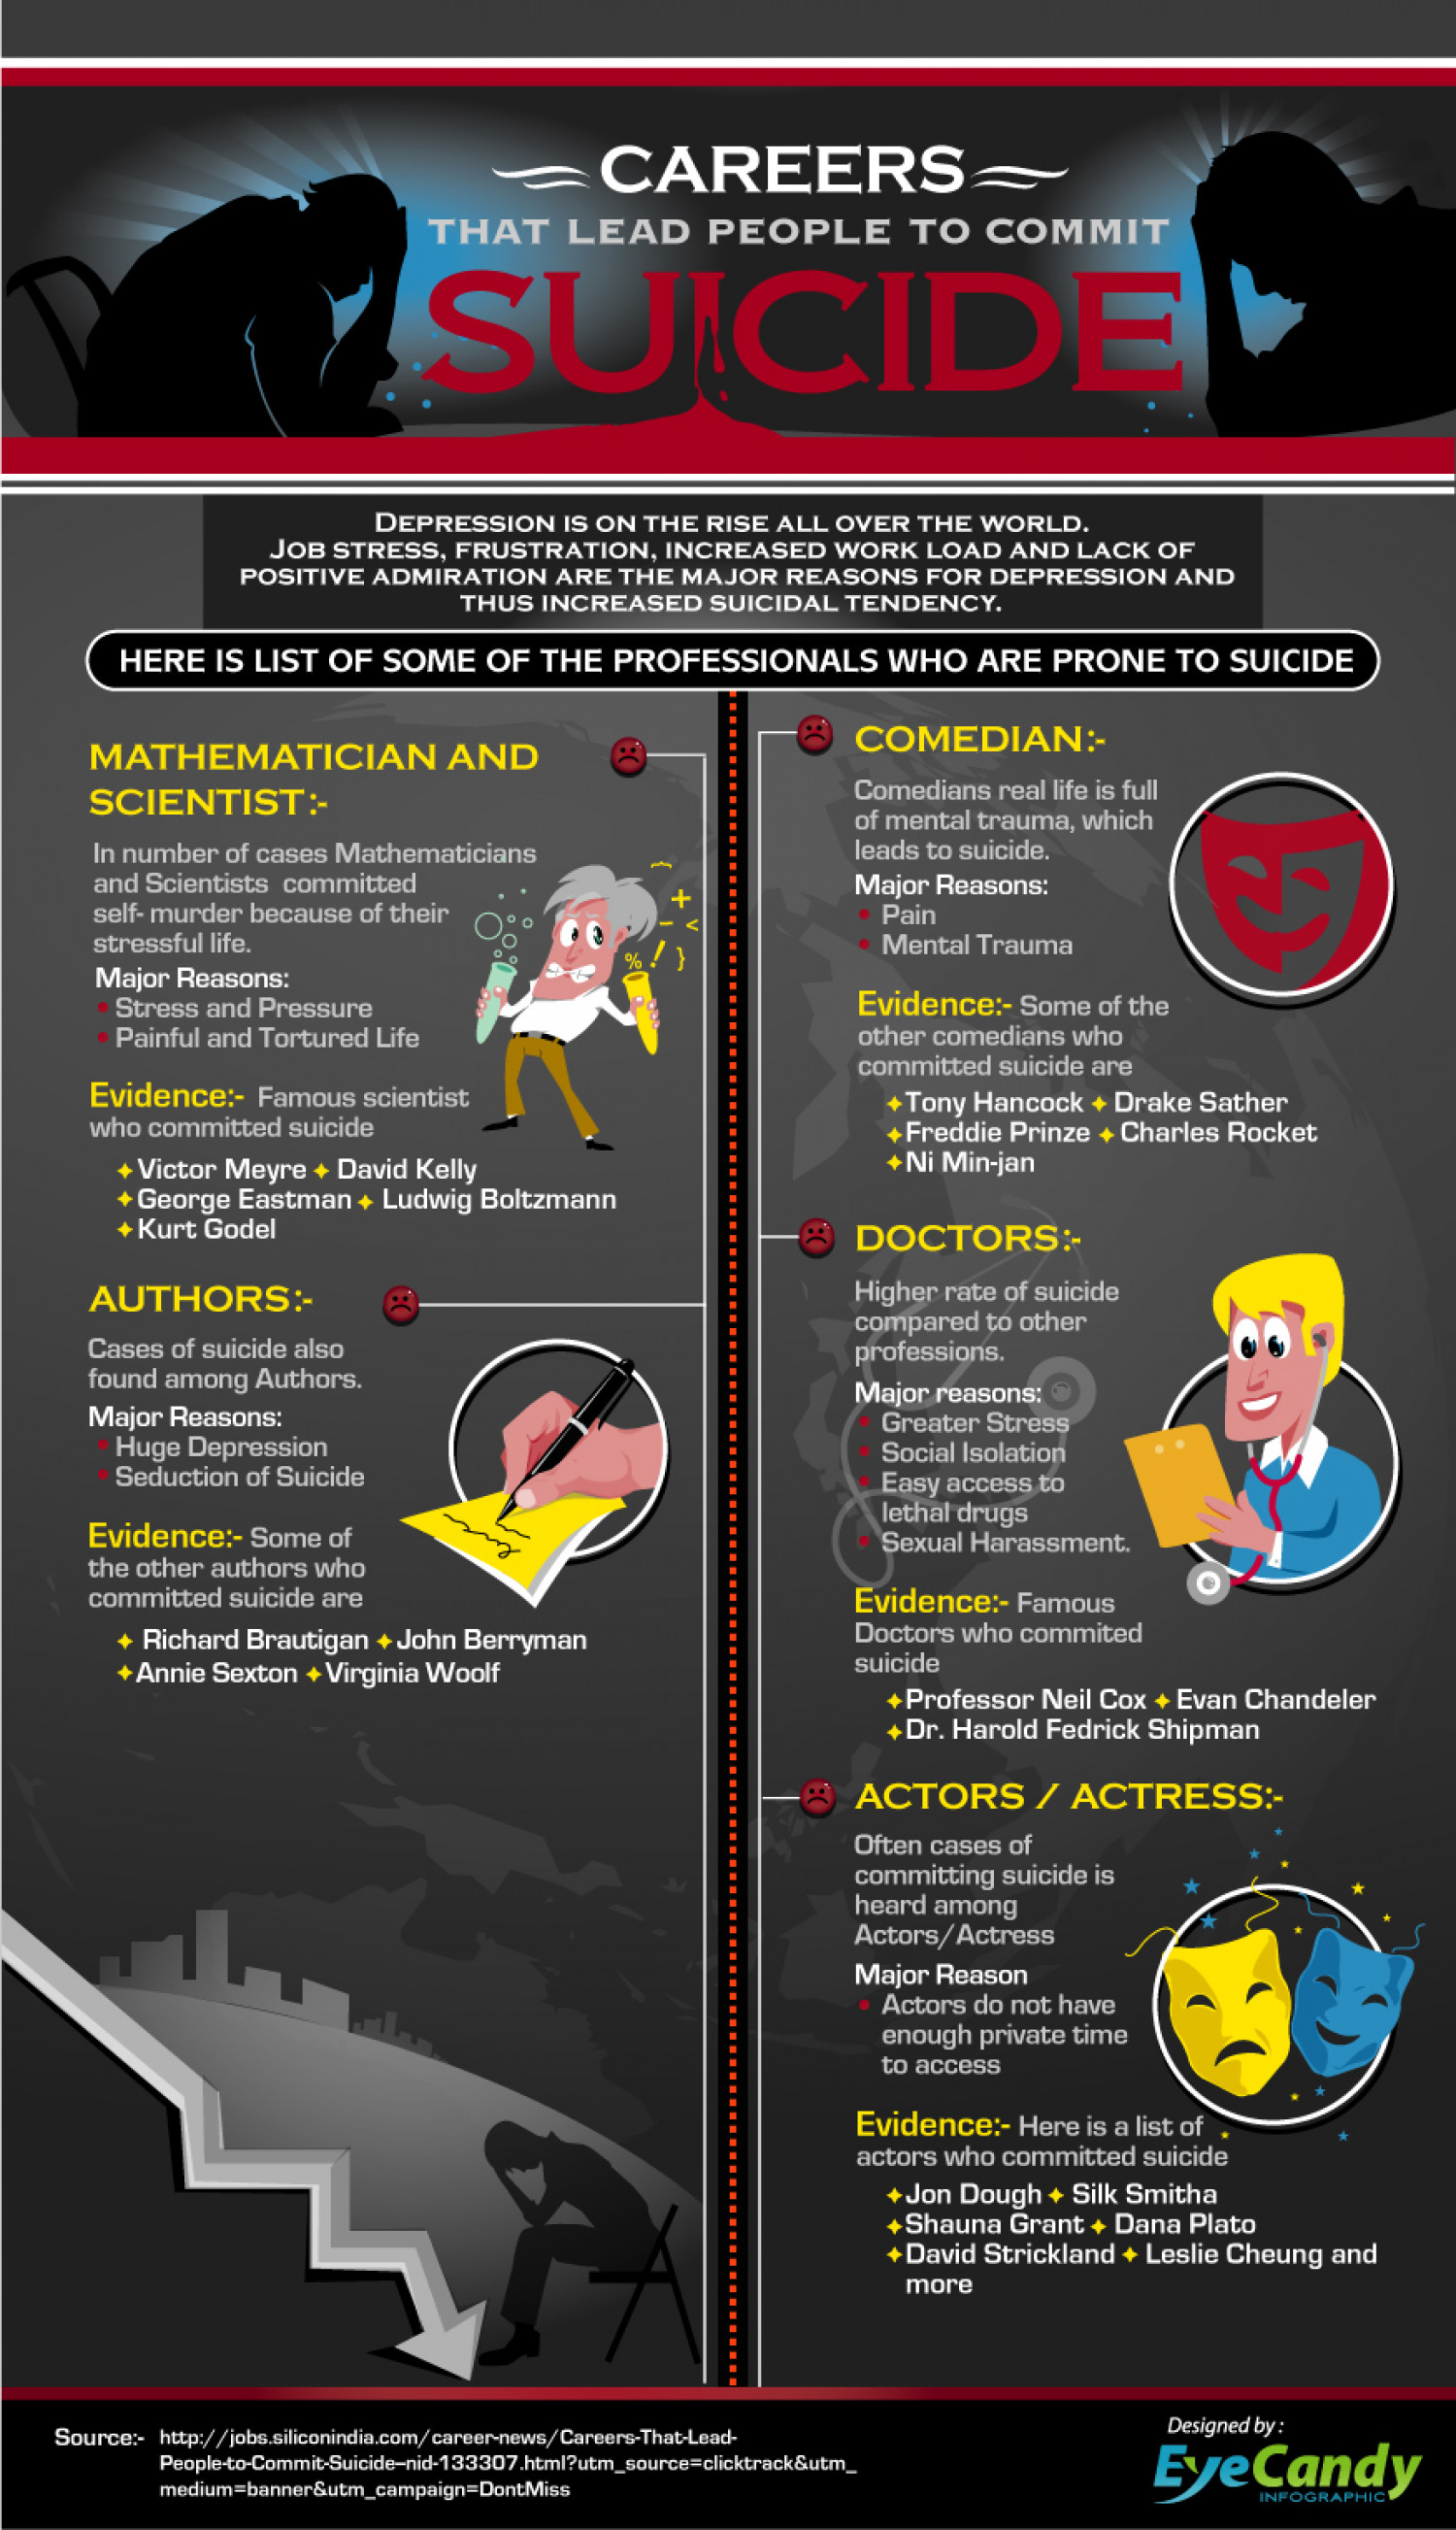 Careers that Lead people to Commit Suicide Infographic